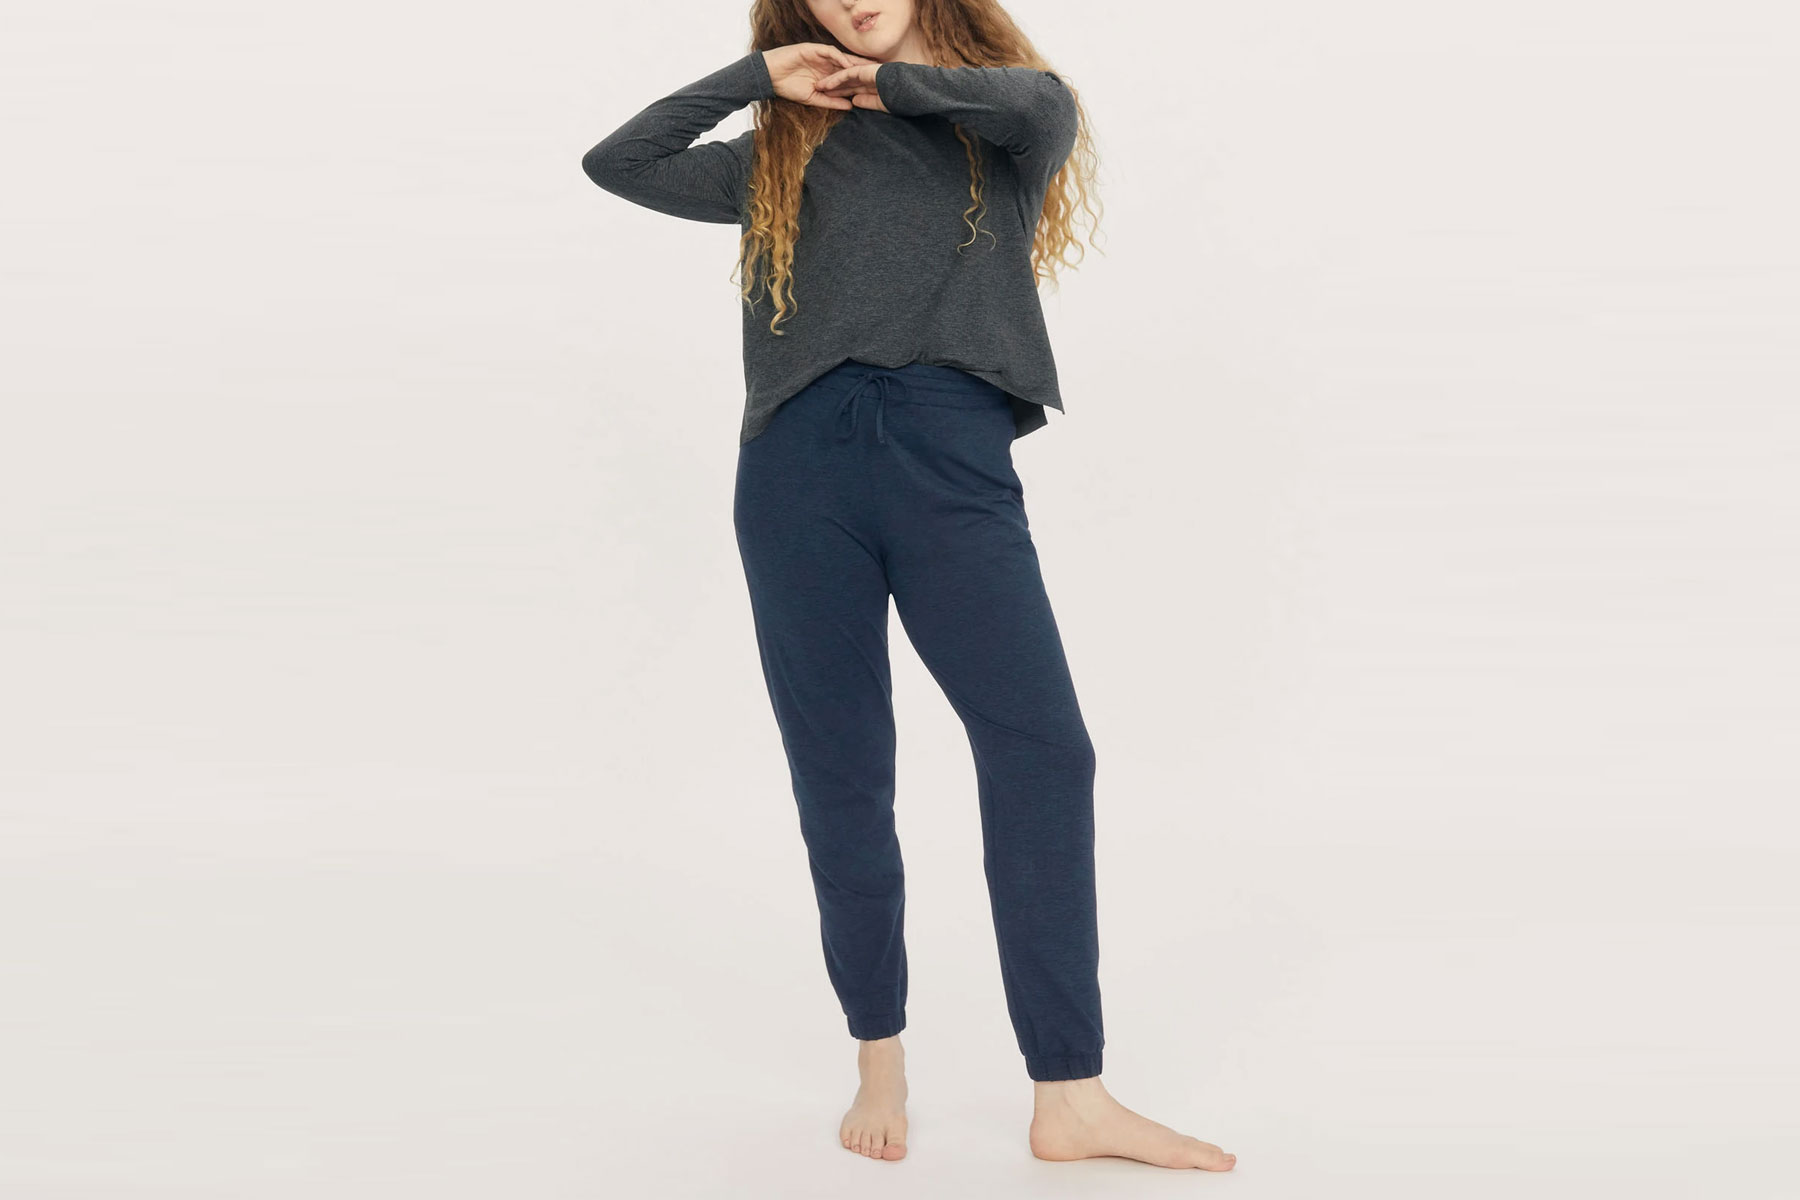 Woman wearing navy joggers and grey sweatshirt